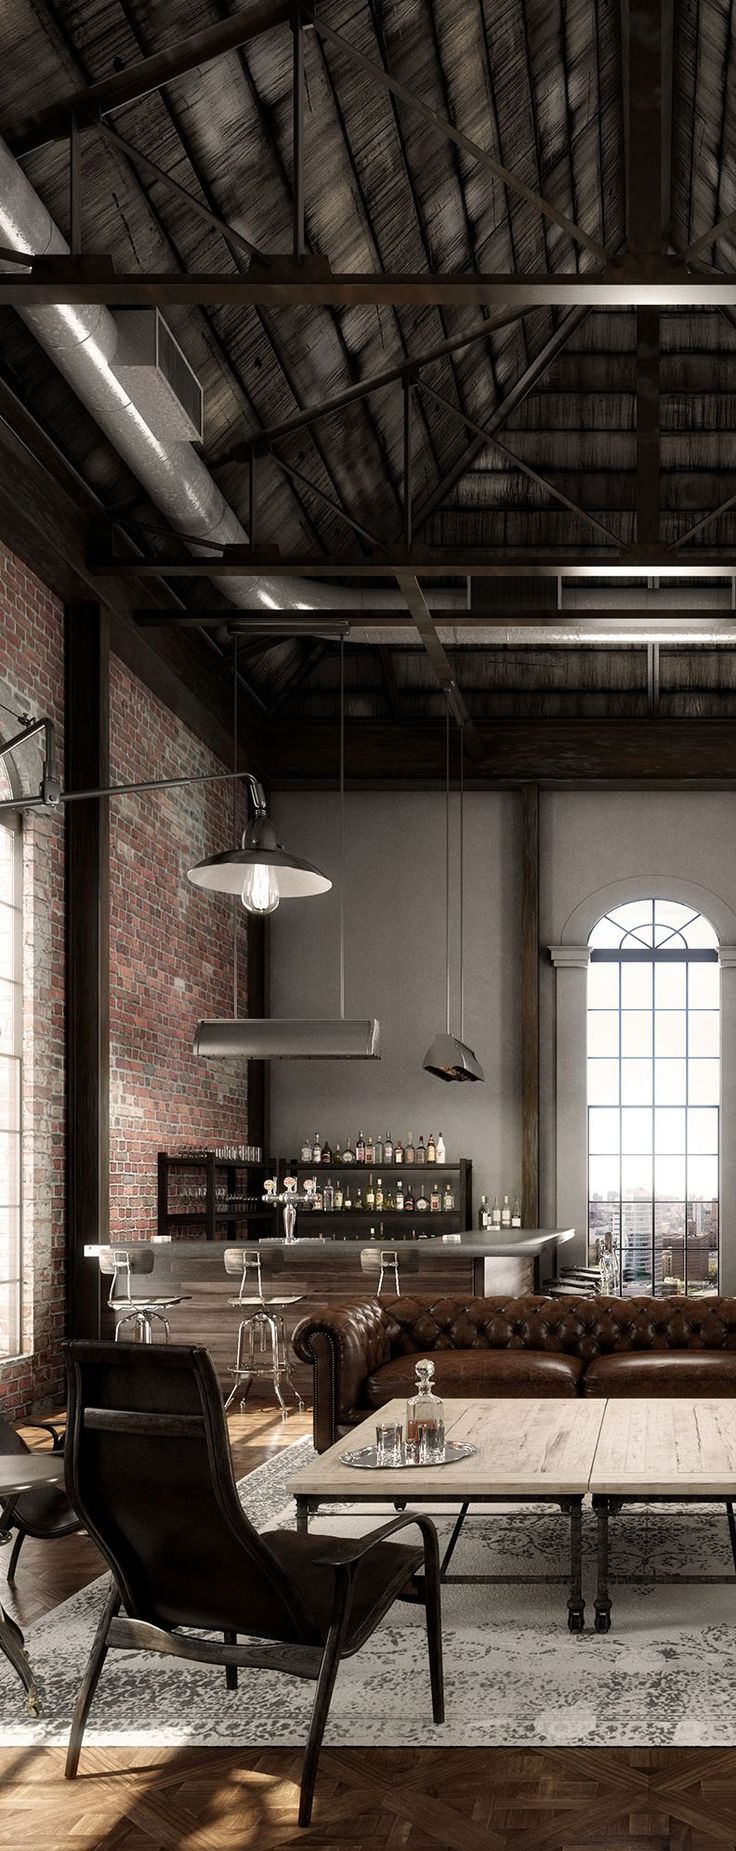 industrial inspired lighting. cabina u0026 cottage dark moody charm character industrial slick living lounge bedroom interior style design house home inspo inspirational inspiration palate inspired lighting